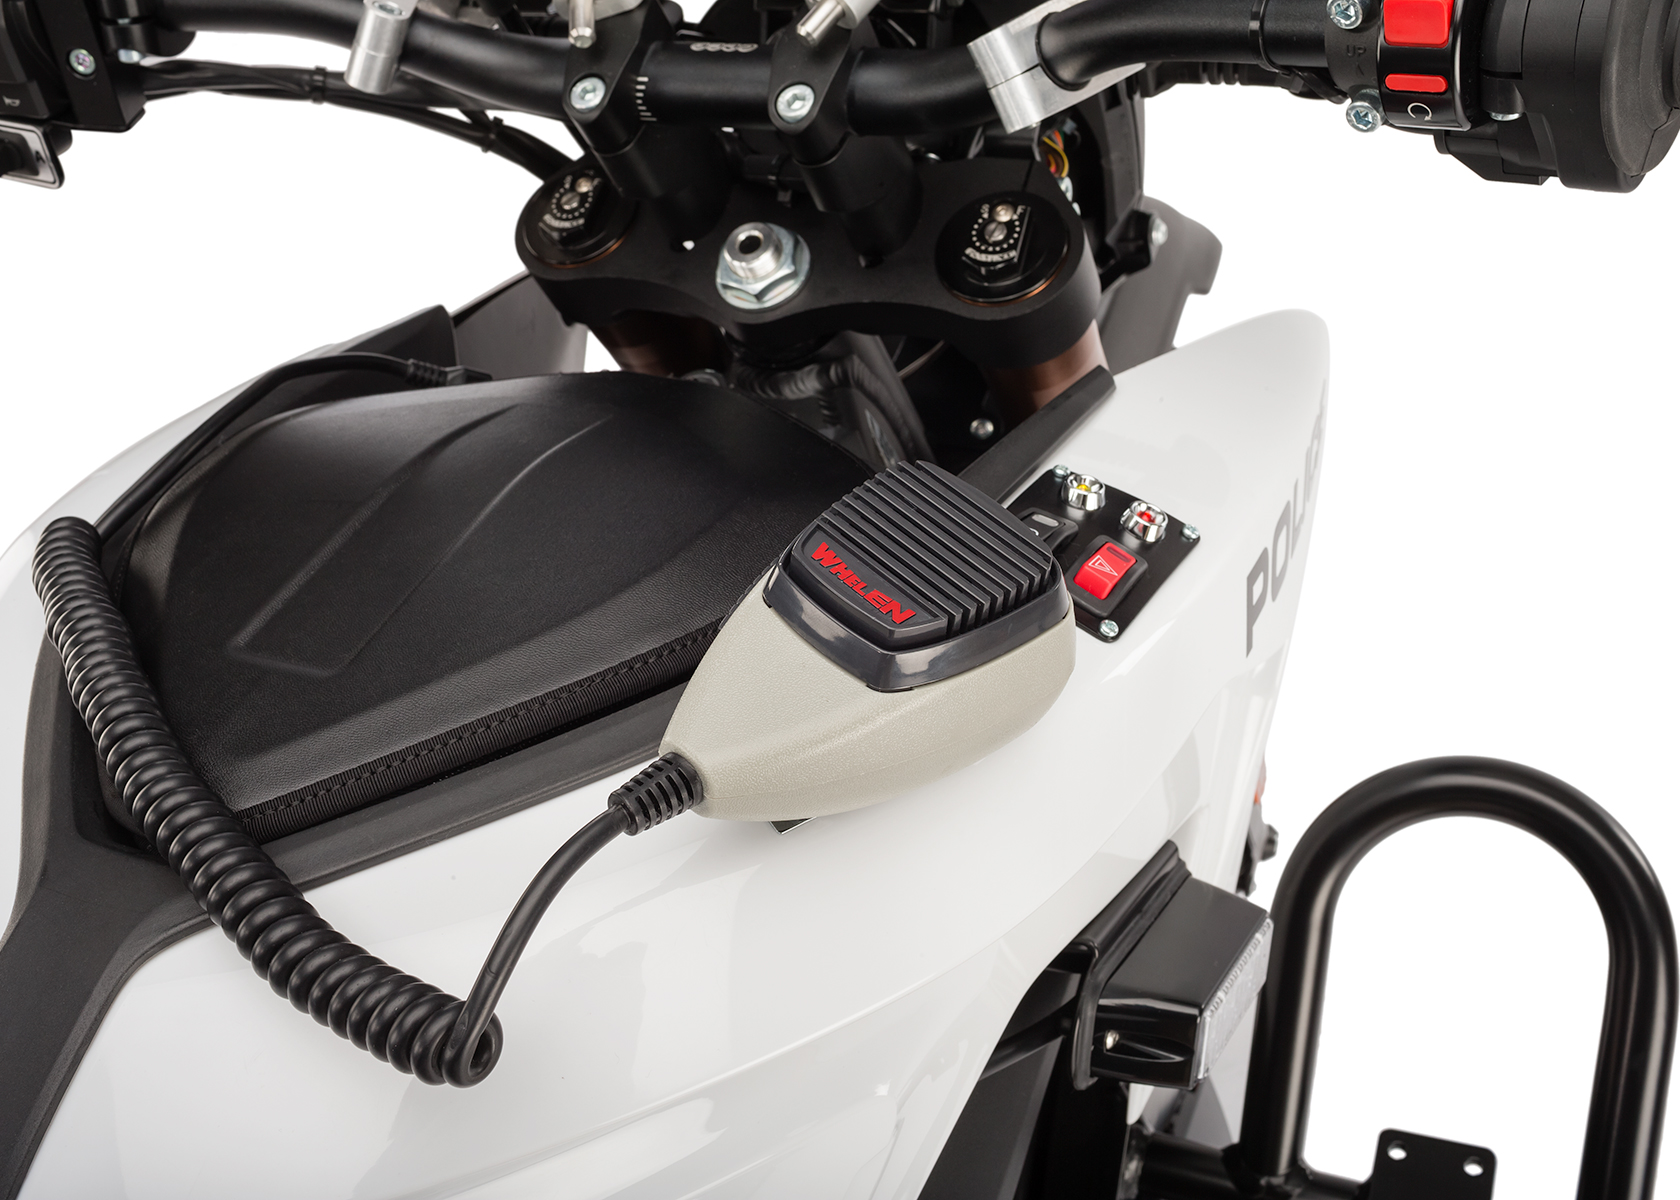 2013 Zero Police Electric Motorcycle: Microphone